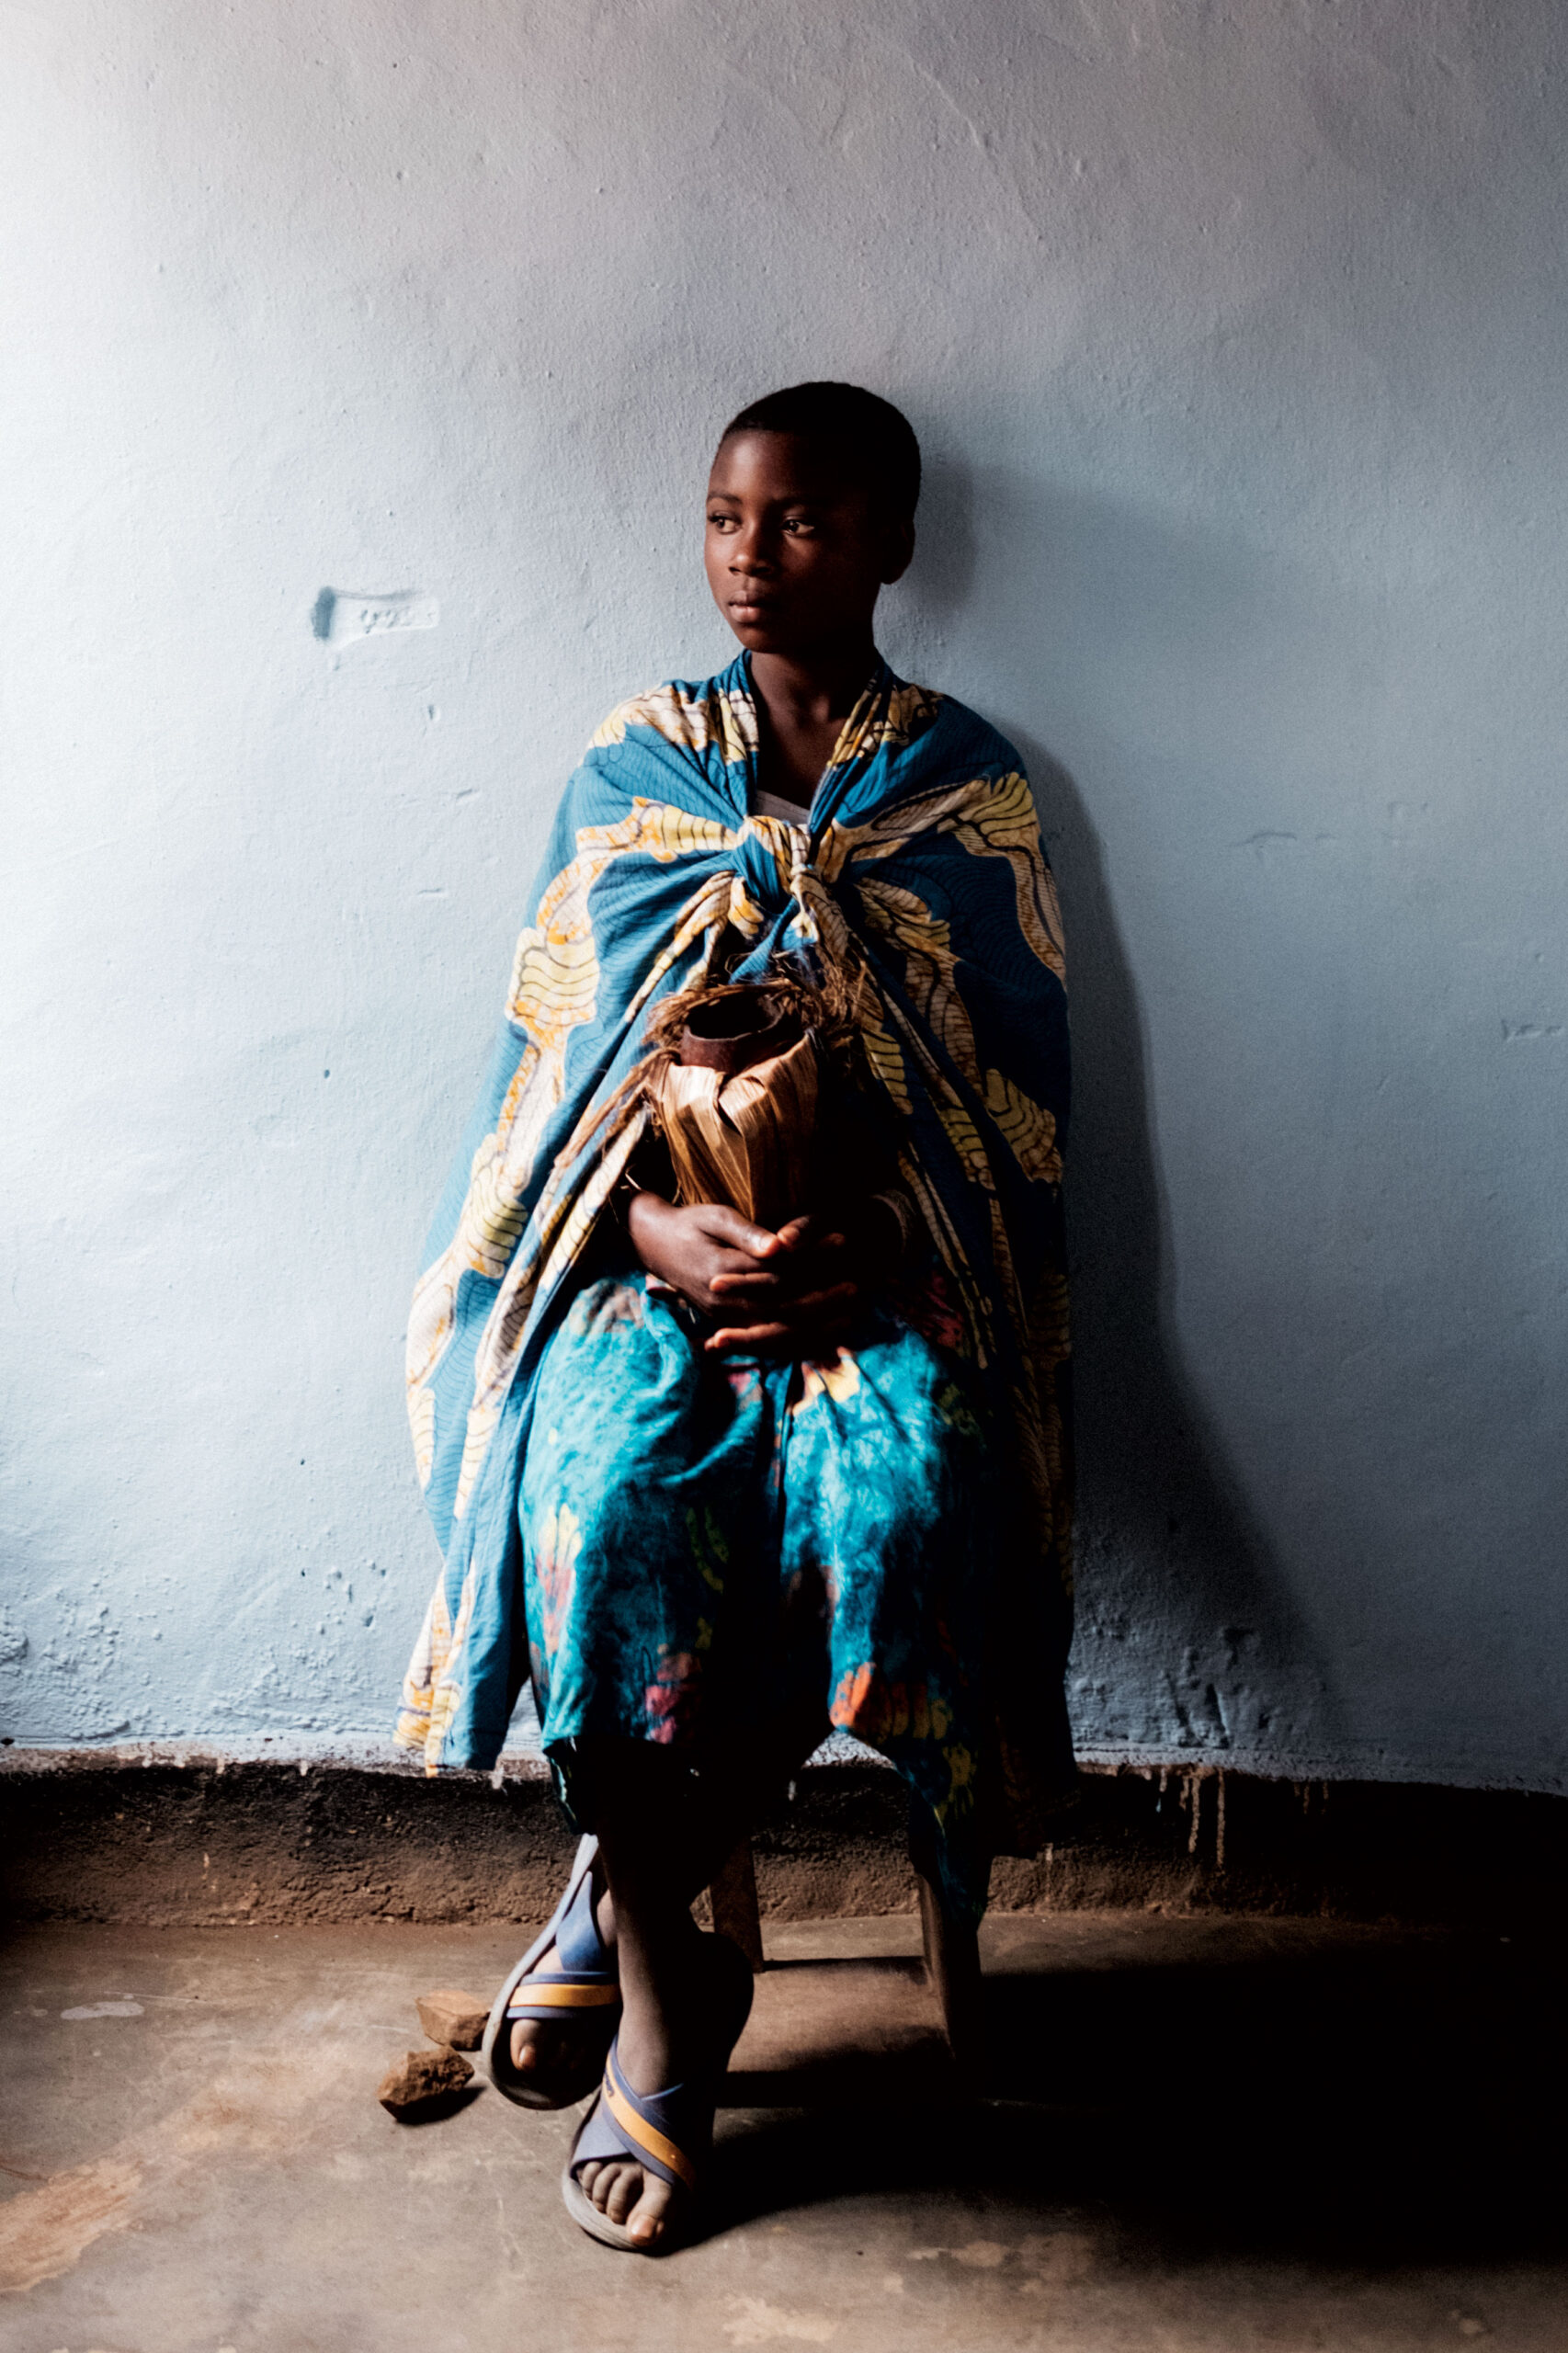 Young woman in traditional dress sitting on a chair.